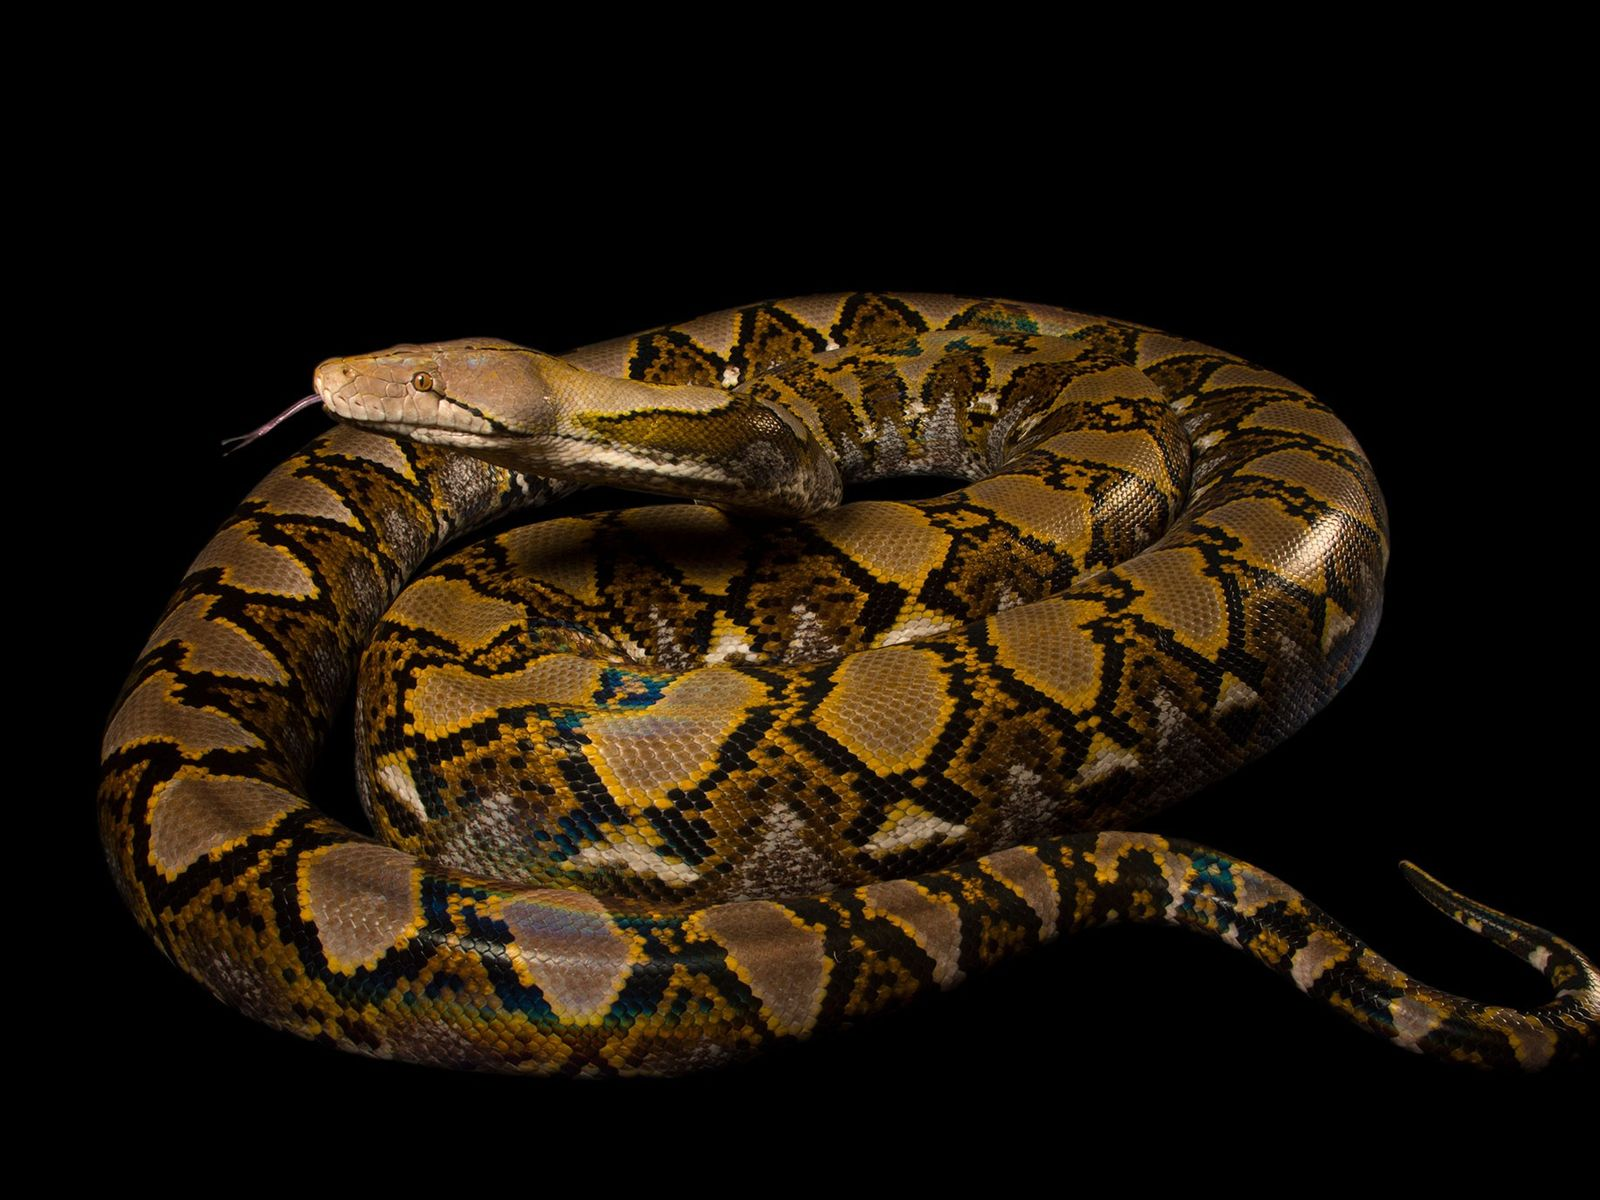 A reticulated python, Broghammerus reticulatus, at the Naples Zoo.